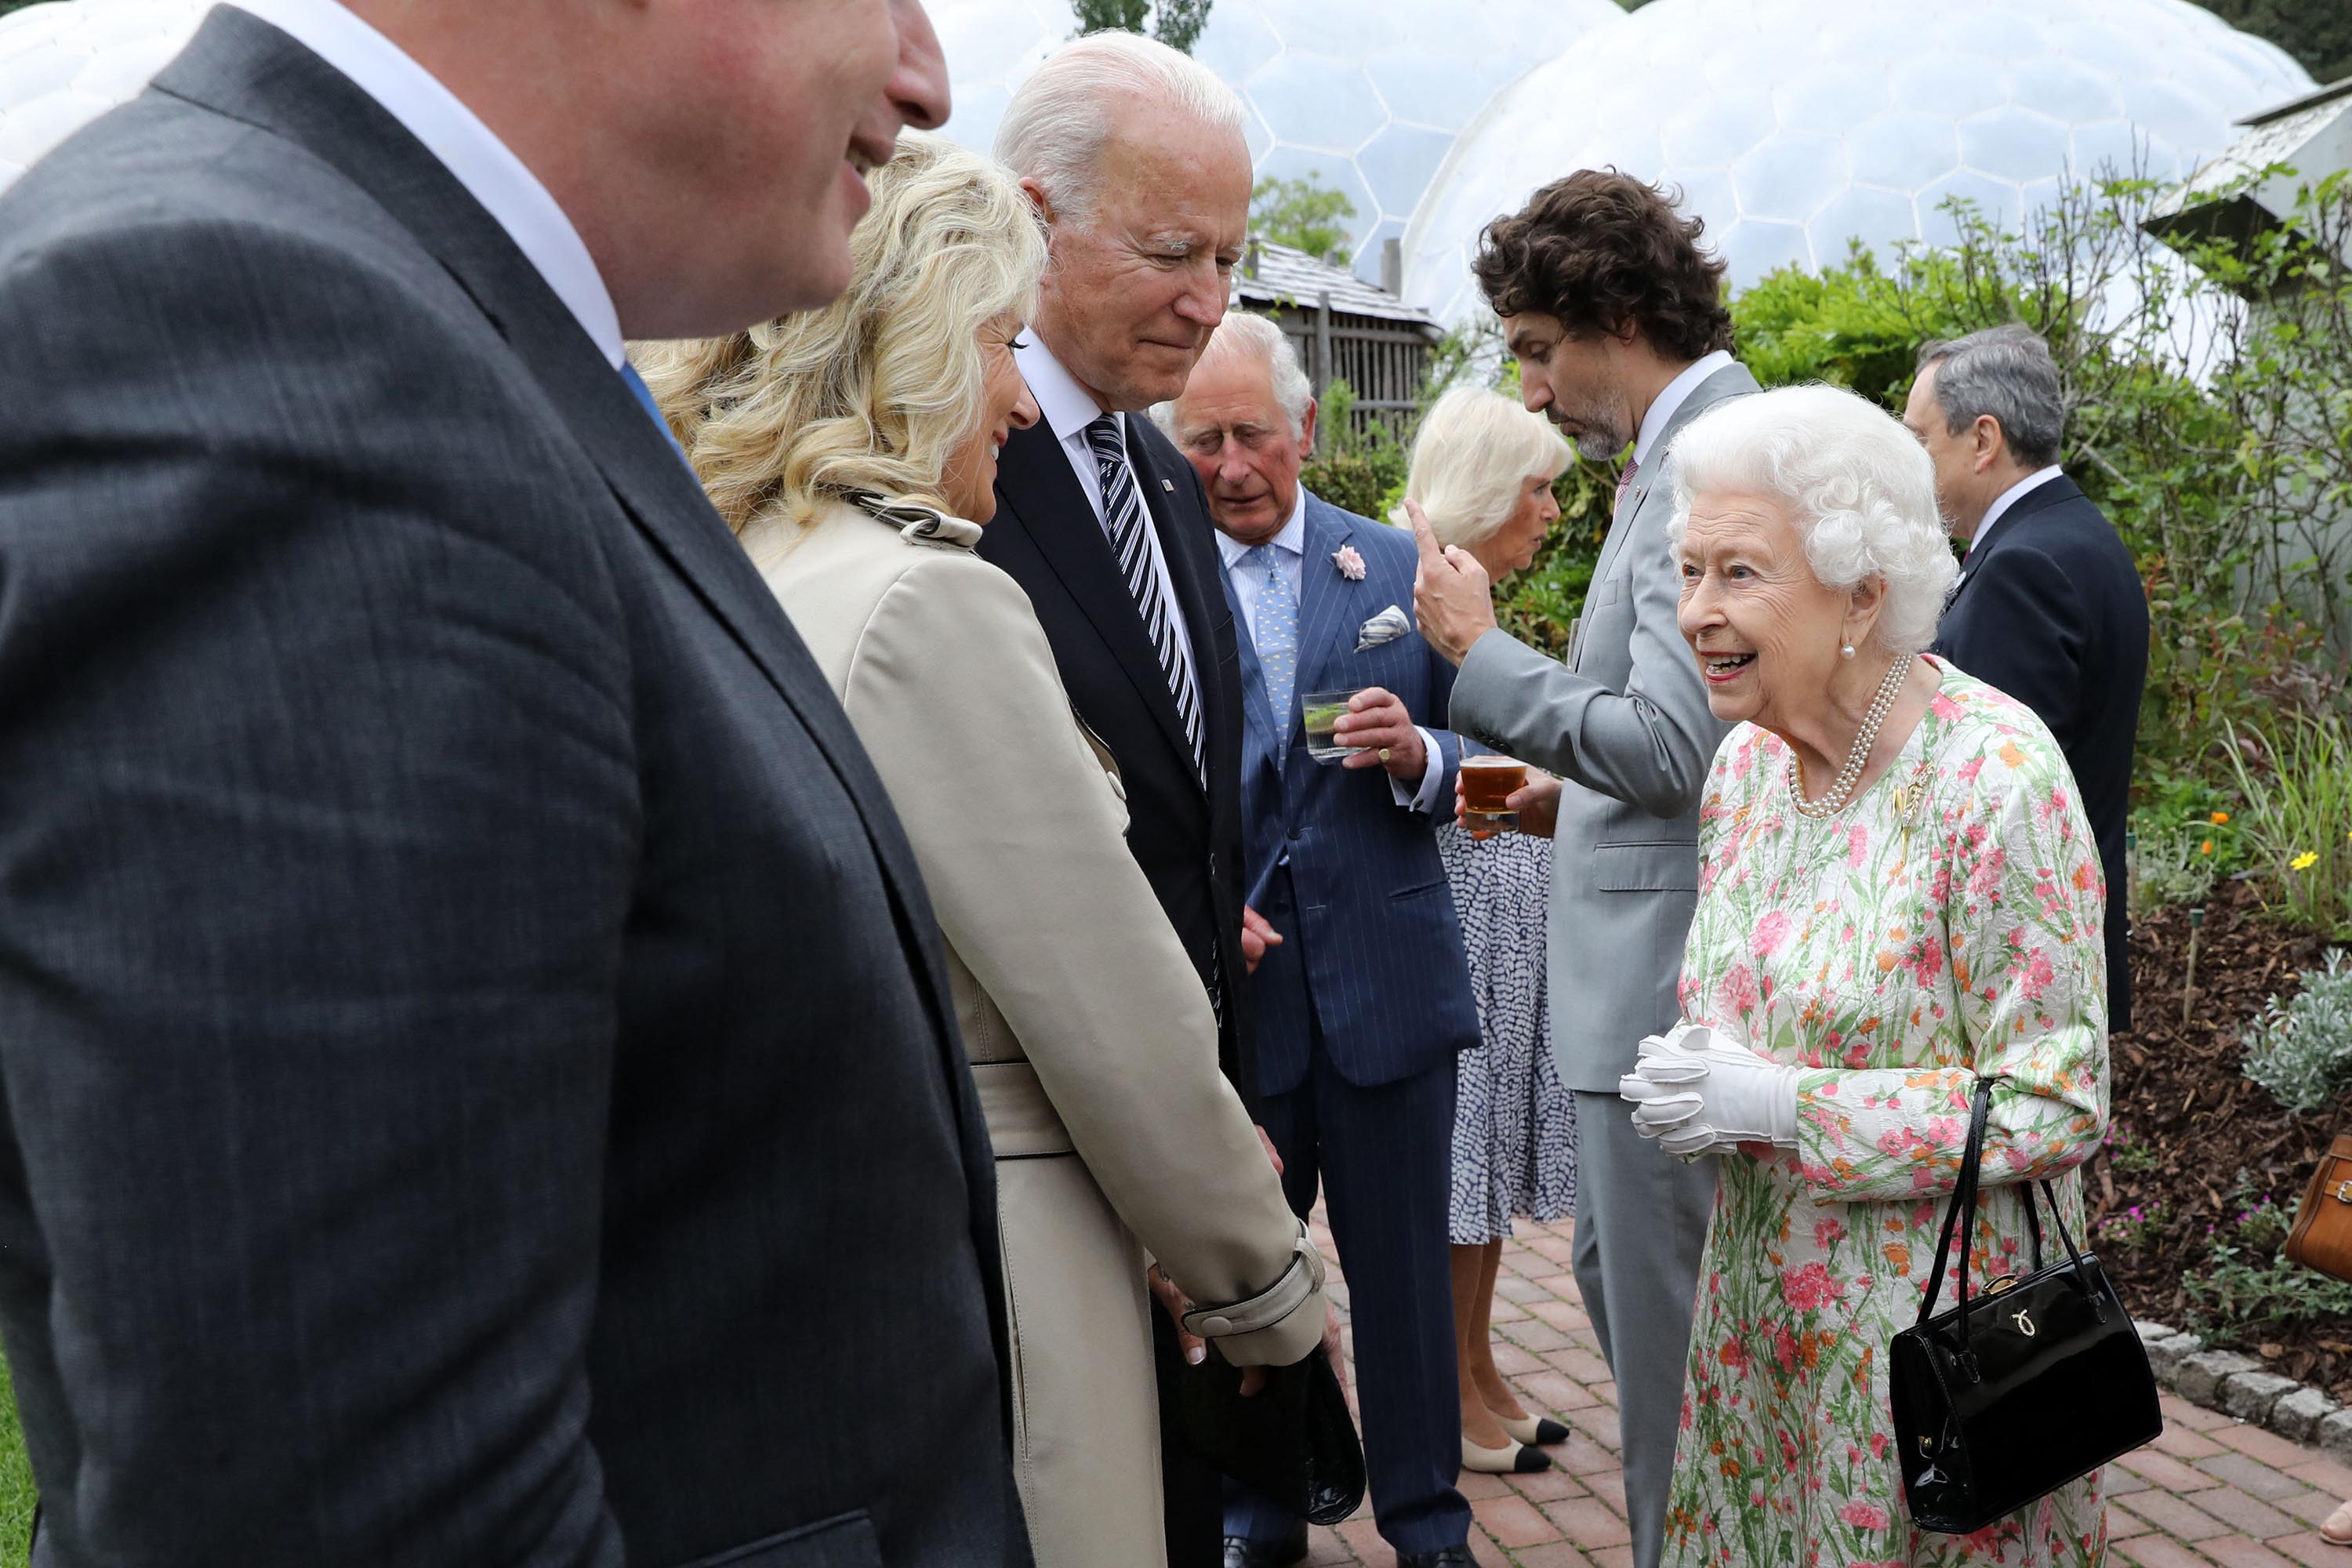 Biden causes sighs of relief among world leaders even as G7 divisions linger